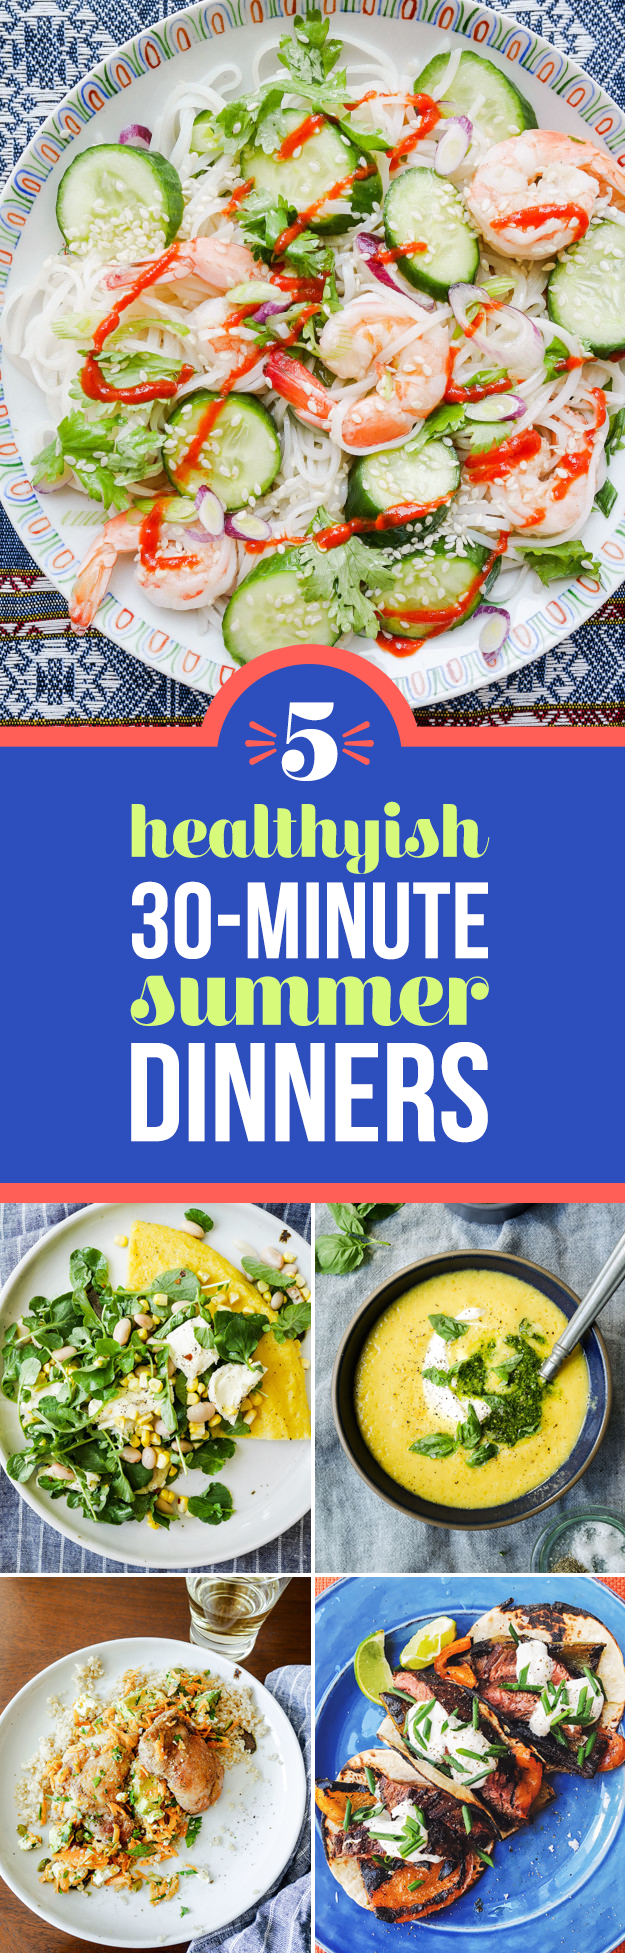 5 Healthyish Summer Dinners You Can Make In 30 Minutes